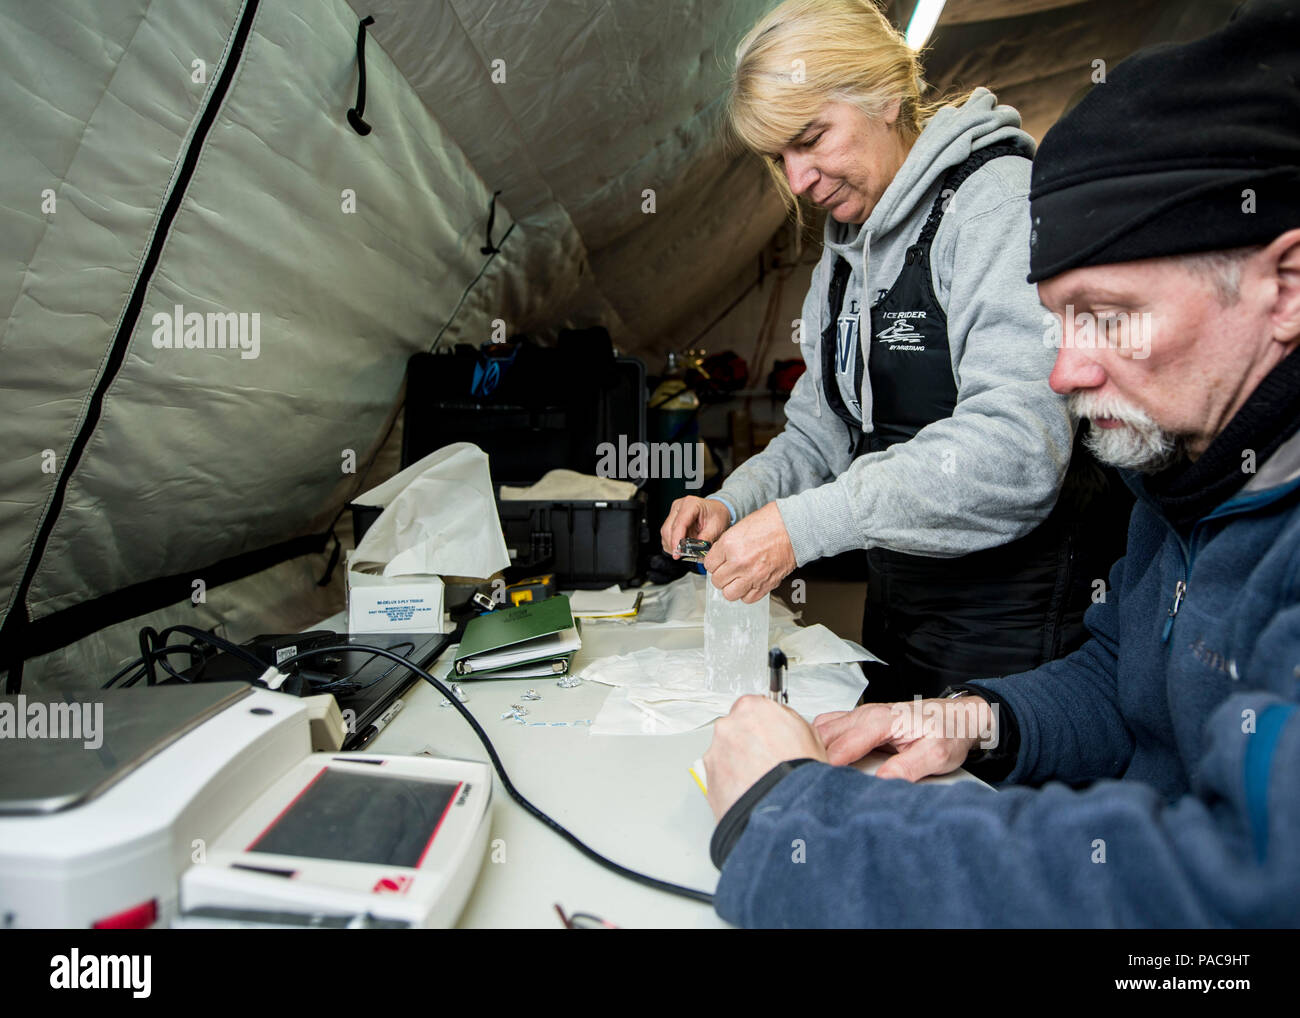 160310-N-QA919-502 ARCTIC CIRCLE (March 10, 2016) - Dr. Joan Gardener and Dr. Rick Hagen, with the Naval Research Lab, measure and weigh an ice core sample taken from the Arctic Circle during Ice Exercise 2016. The tests are part of an ongoing ice characterization research project. ICEX 2016 is a five-week exercise designed to research, test, and evaluate operational capabilities in the region. ICEX 2016 allows the U.S. Navy to assess operational readiness in the Arctic, increase experience in the region, advance understanding of the Arctic Environment, and develop partnerships and collaborati - Stock Image